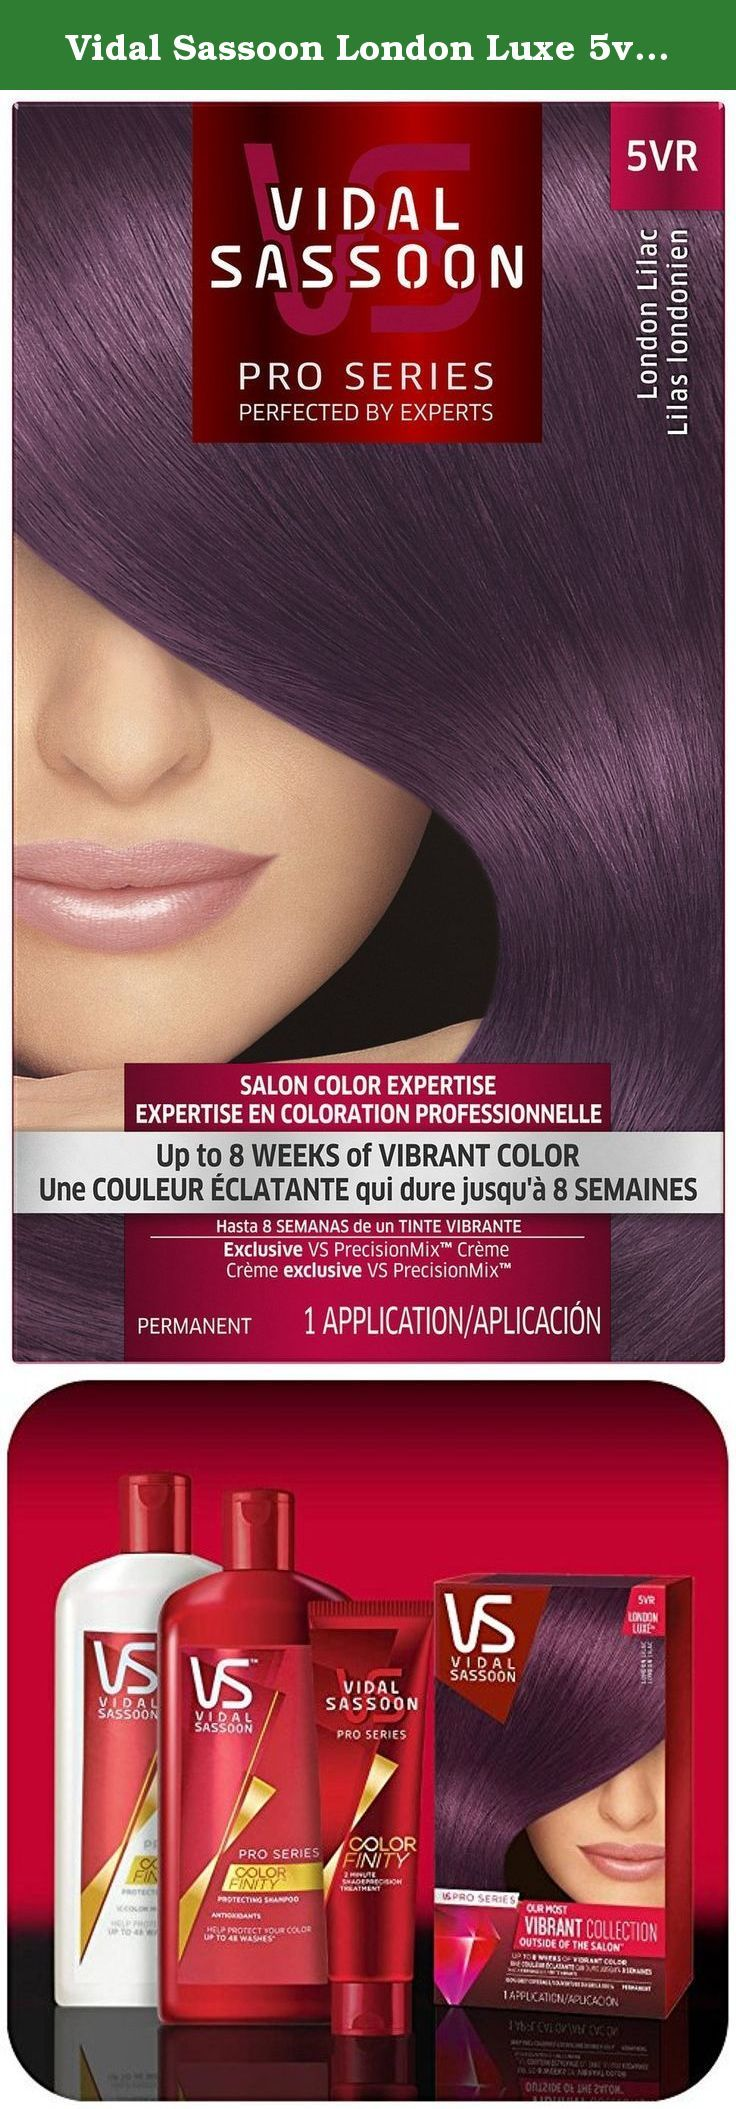 Vidal Sassoon London Luxe 5vr London Lilac 1 Kit. Vidal Sassoon London Luxe view larger Vidal Sassoon London Luxe is a collection of fashion-forward, ultra vibrant shades crafted with salon expertise for up to eight weeks of salon-vibrant color. Each shade is mixed to calibrate the right blend of pigments, incorporating salon expertise into every box. Now you can let your hair color ideas run wild with amazing, on-trend colors from Vidal Sassoon. At A Glance Fashion-forward, purple hair...